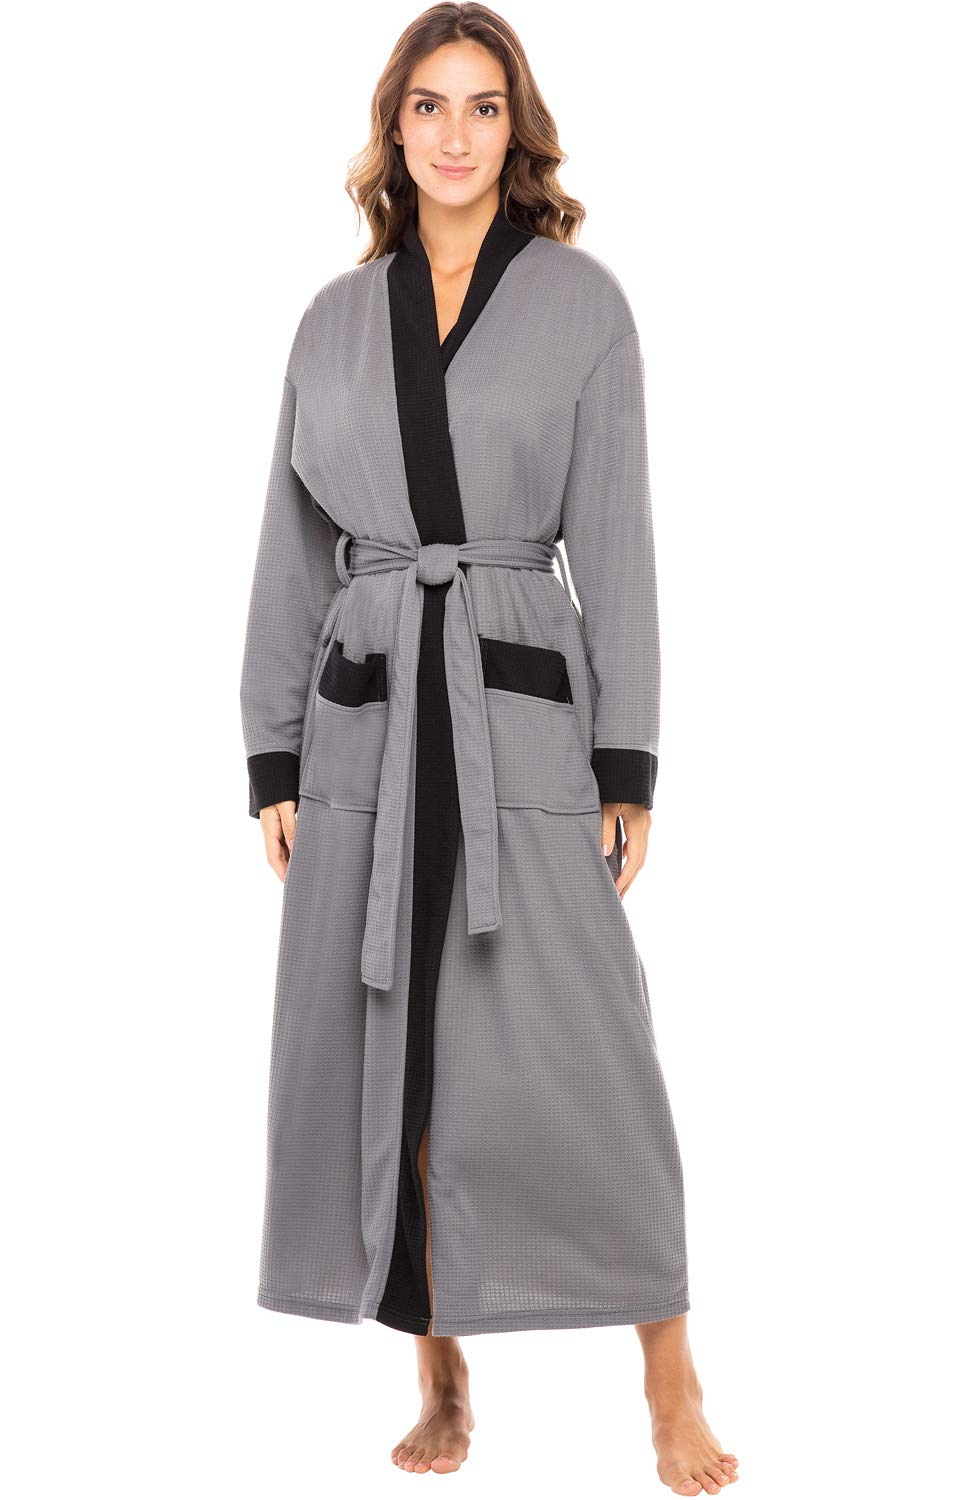 Alexander Del Rossa Women's Warm Fleece Robe, Long Plush Bathrobe